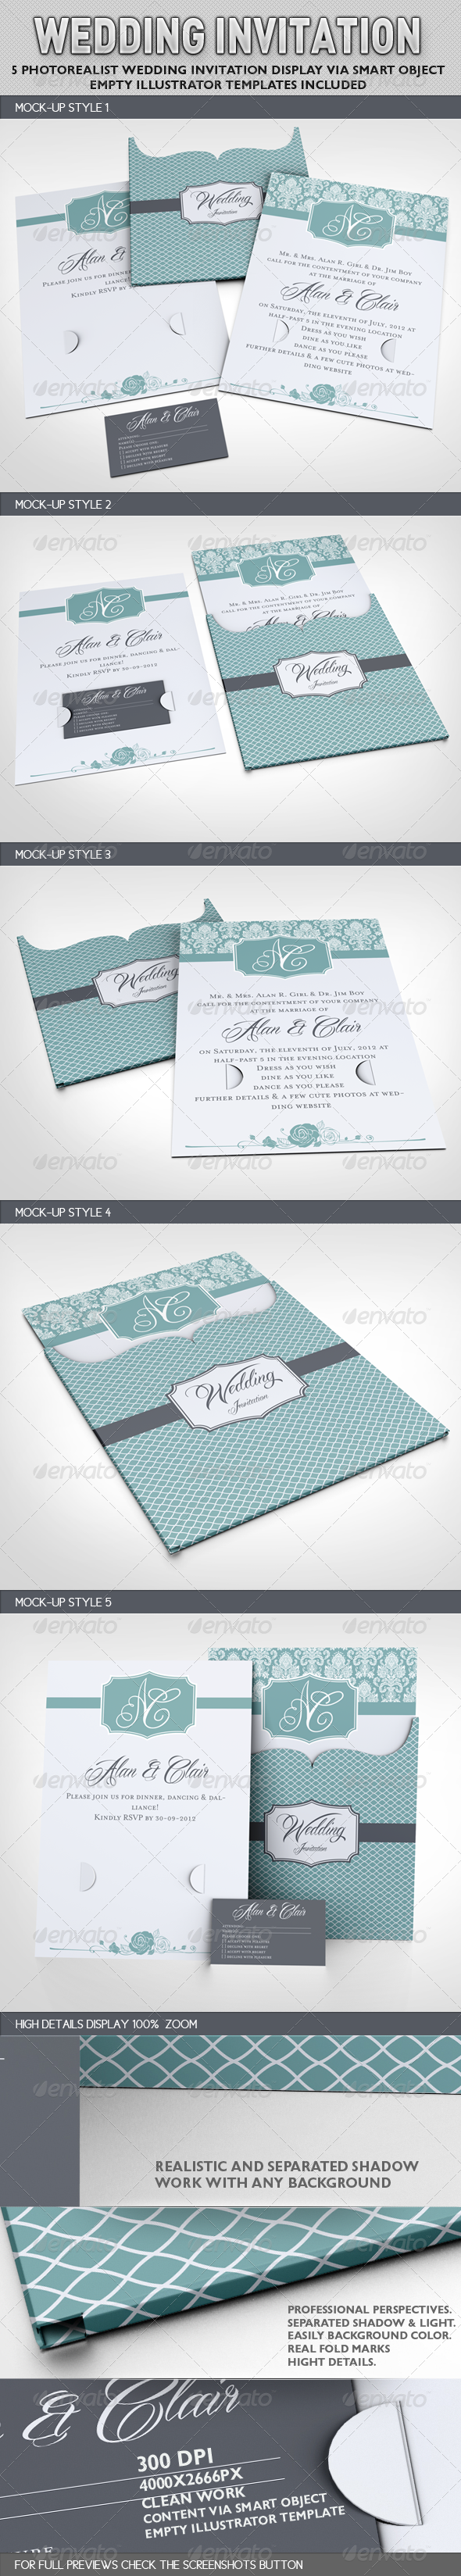 Wedding Invitation Jacket Mock-up - Miscellaneous Print